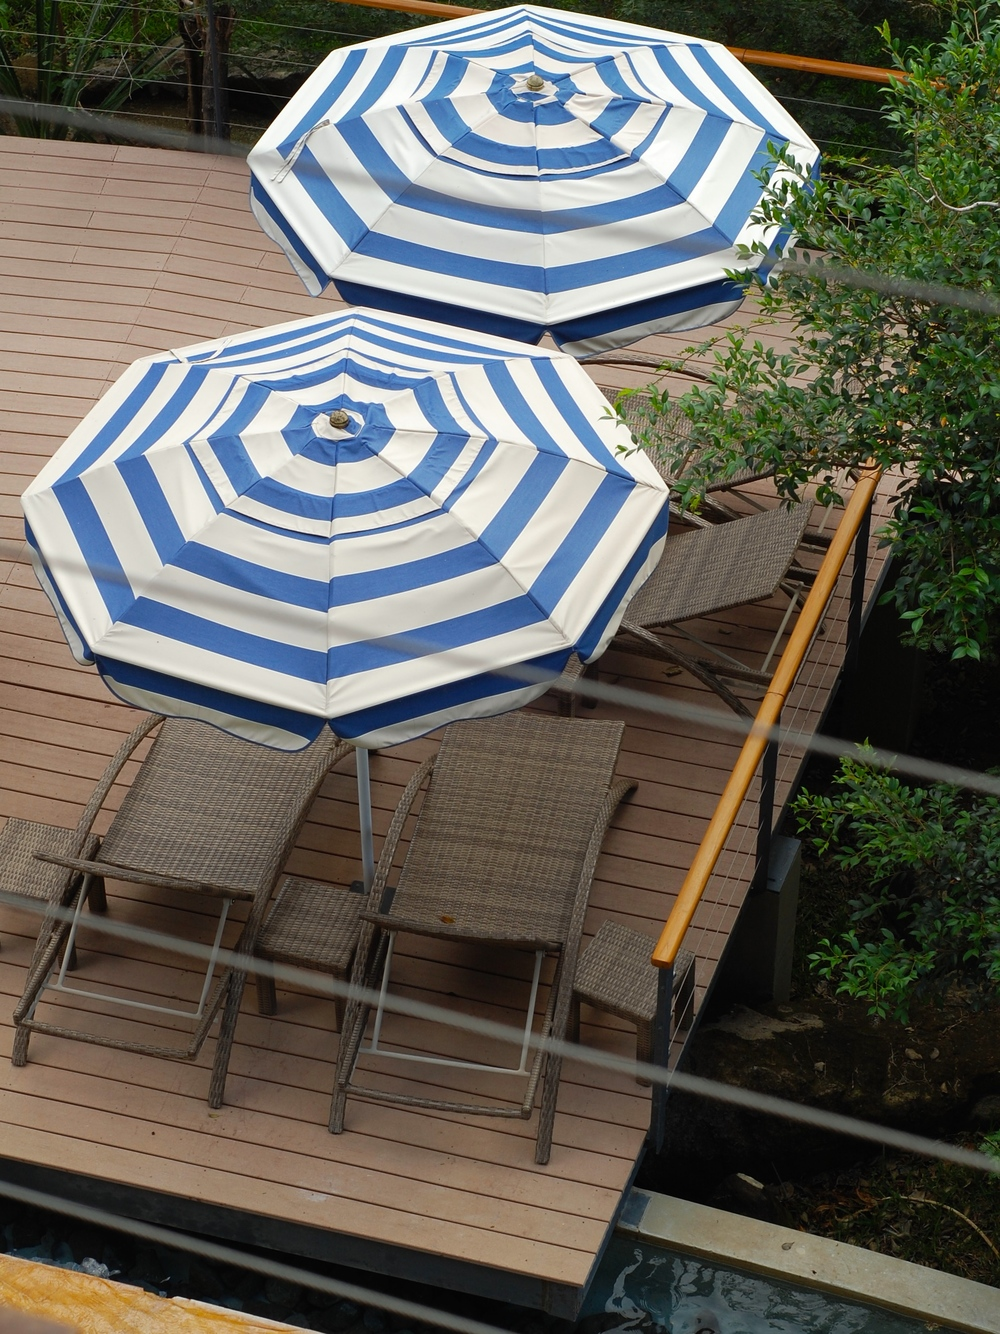 Pool umbrellas at Rio Perdido